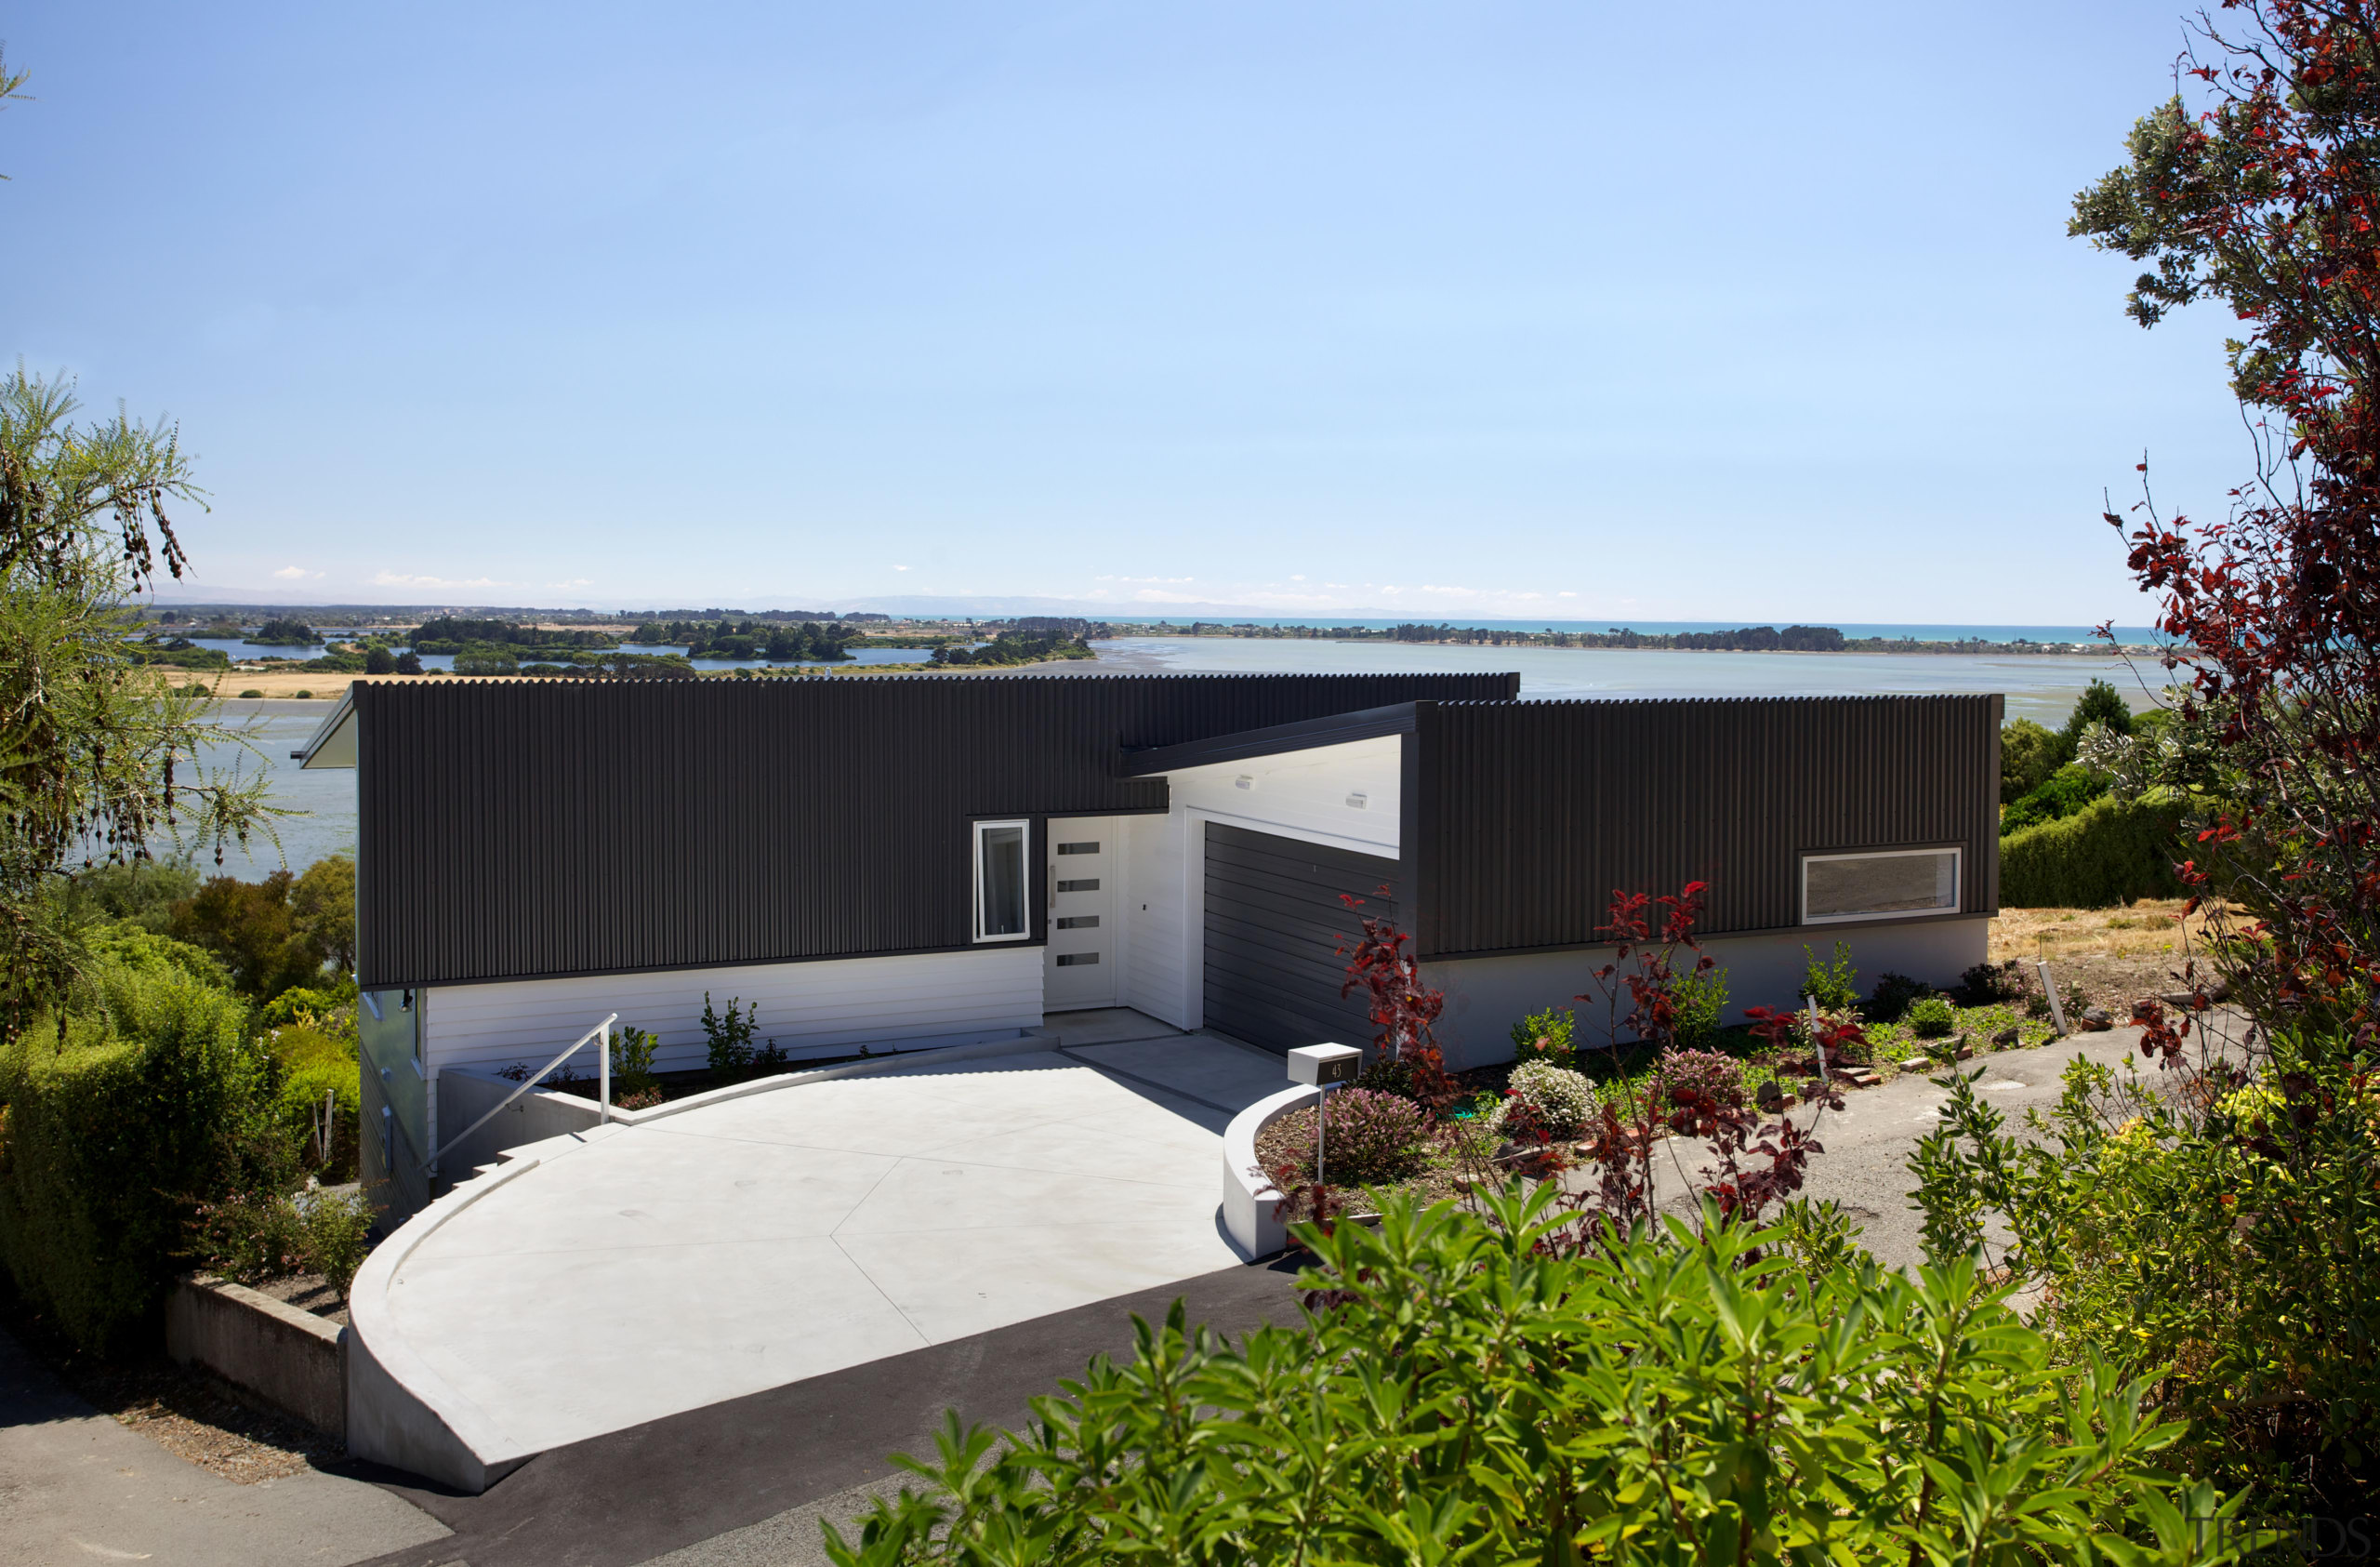 The sloping roof form of this new Christchurch architecture, backyard, cottage, home, house, property, real estate, roof, shed, yard, teal